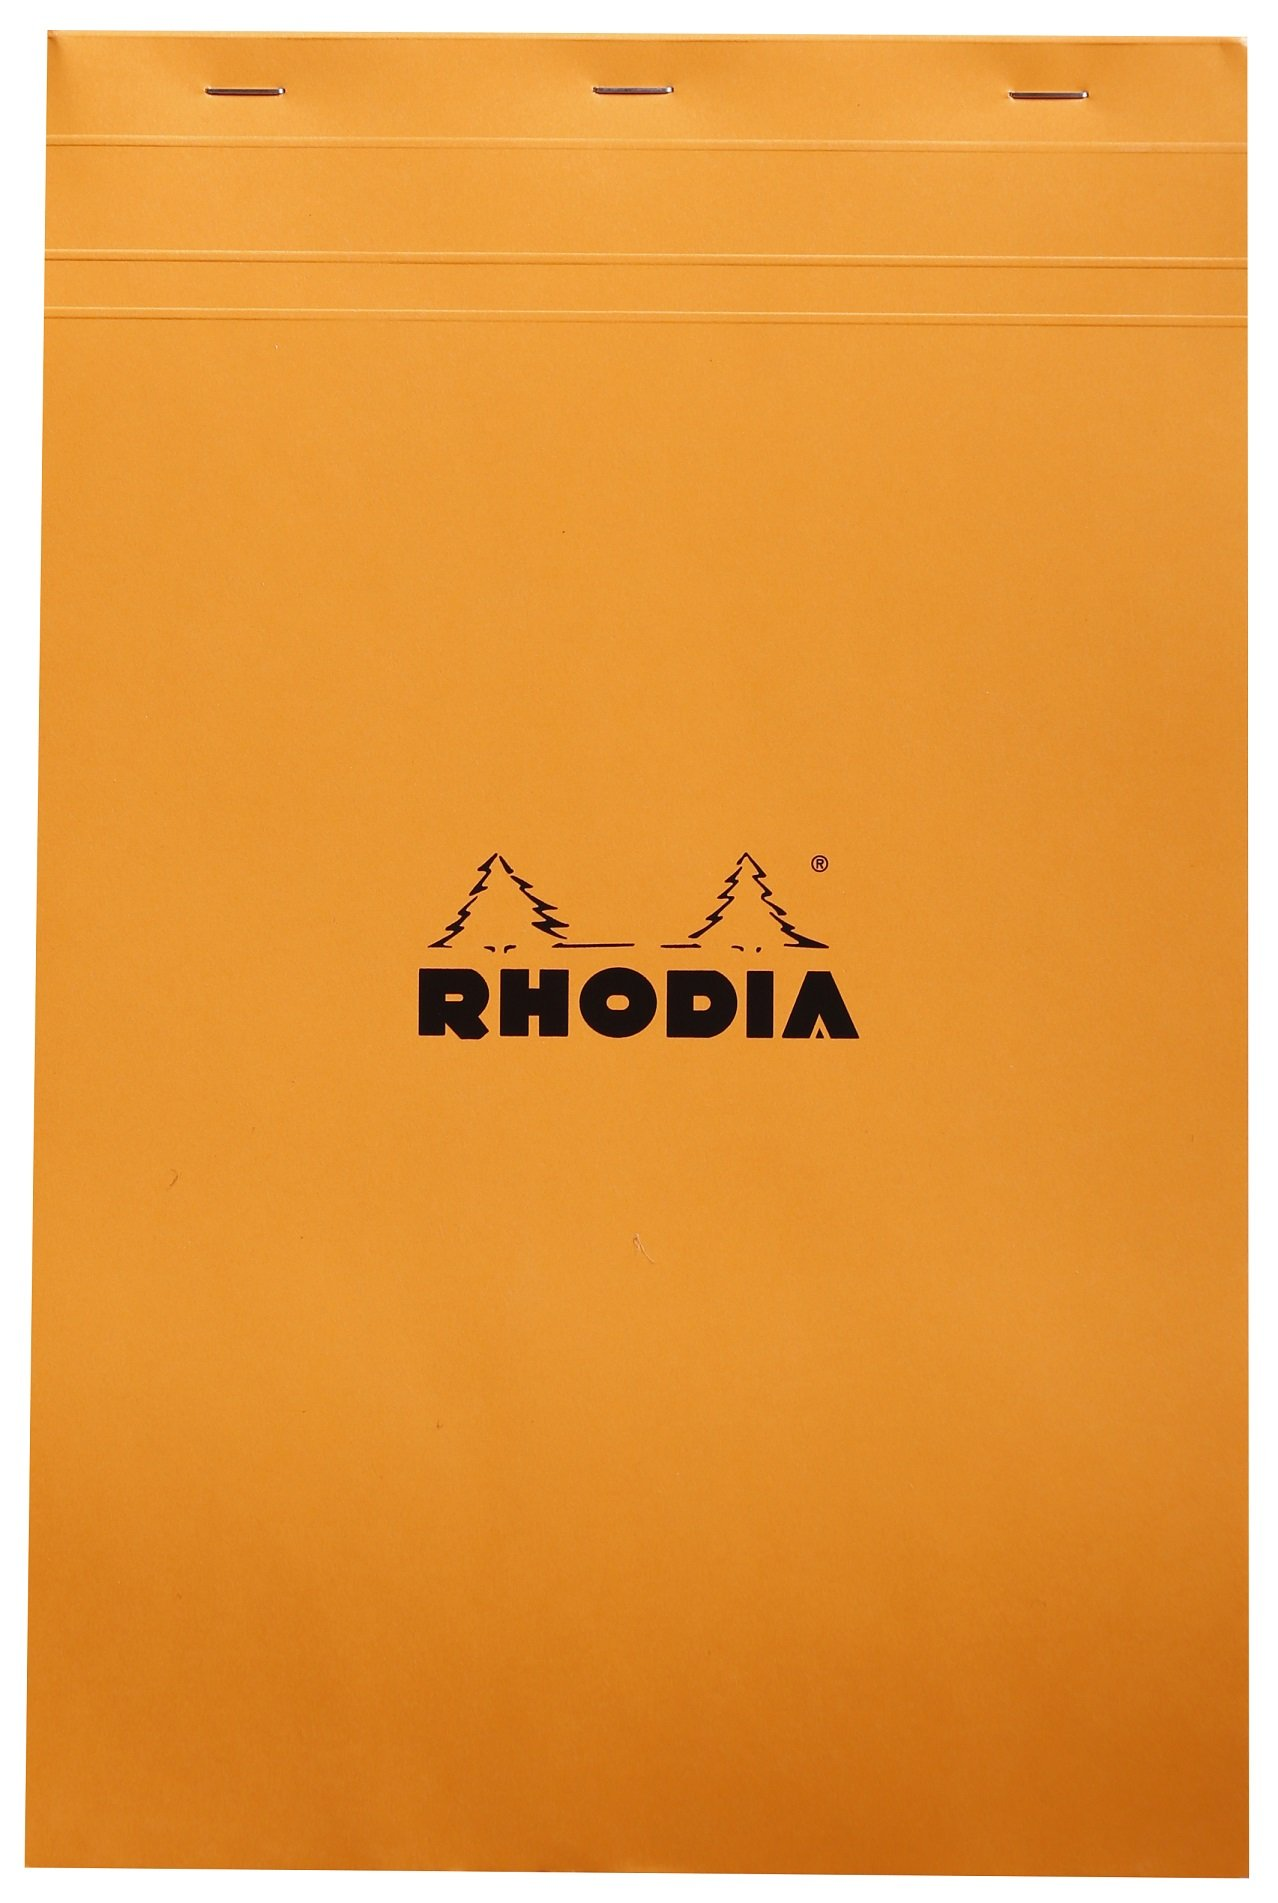 Rhodia Staplebound Notepads - Graph 80 sheets - 8 1/4 x 12 1/2 in. - Orange cover